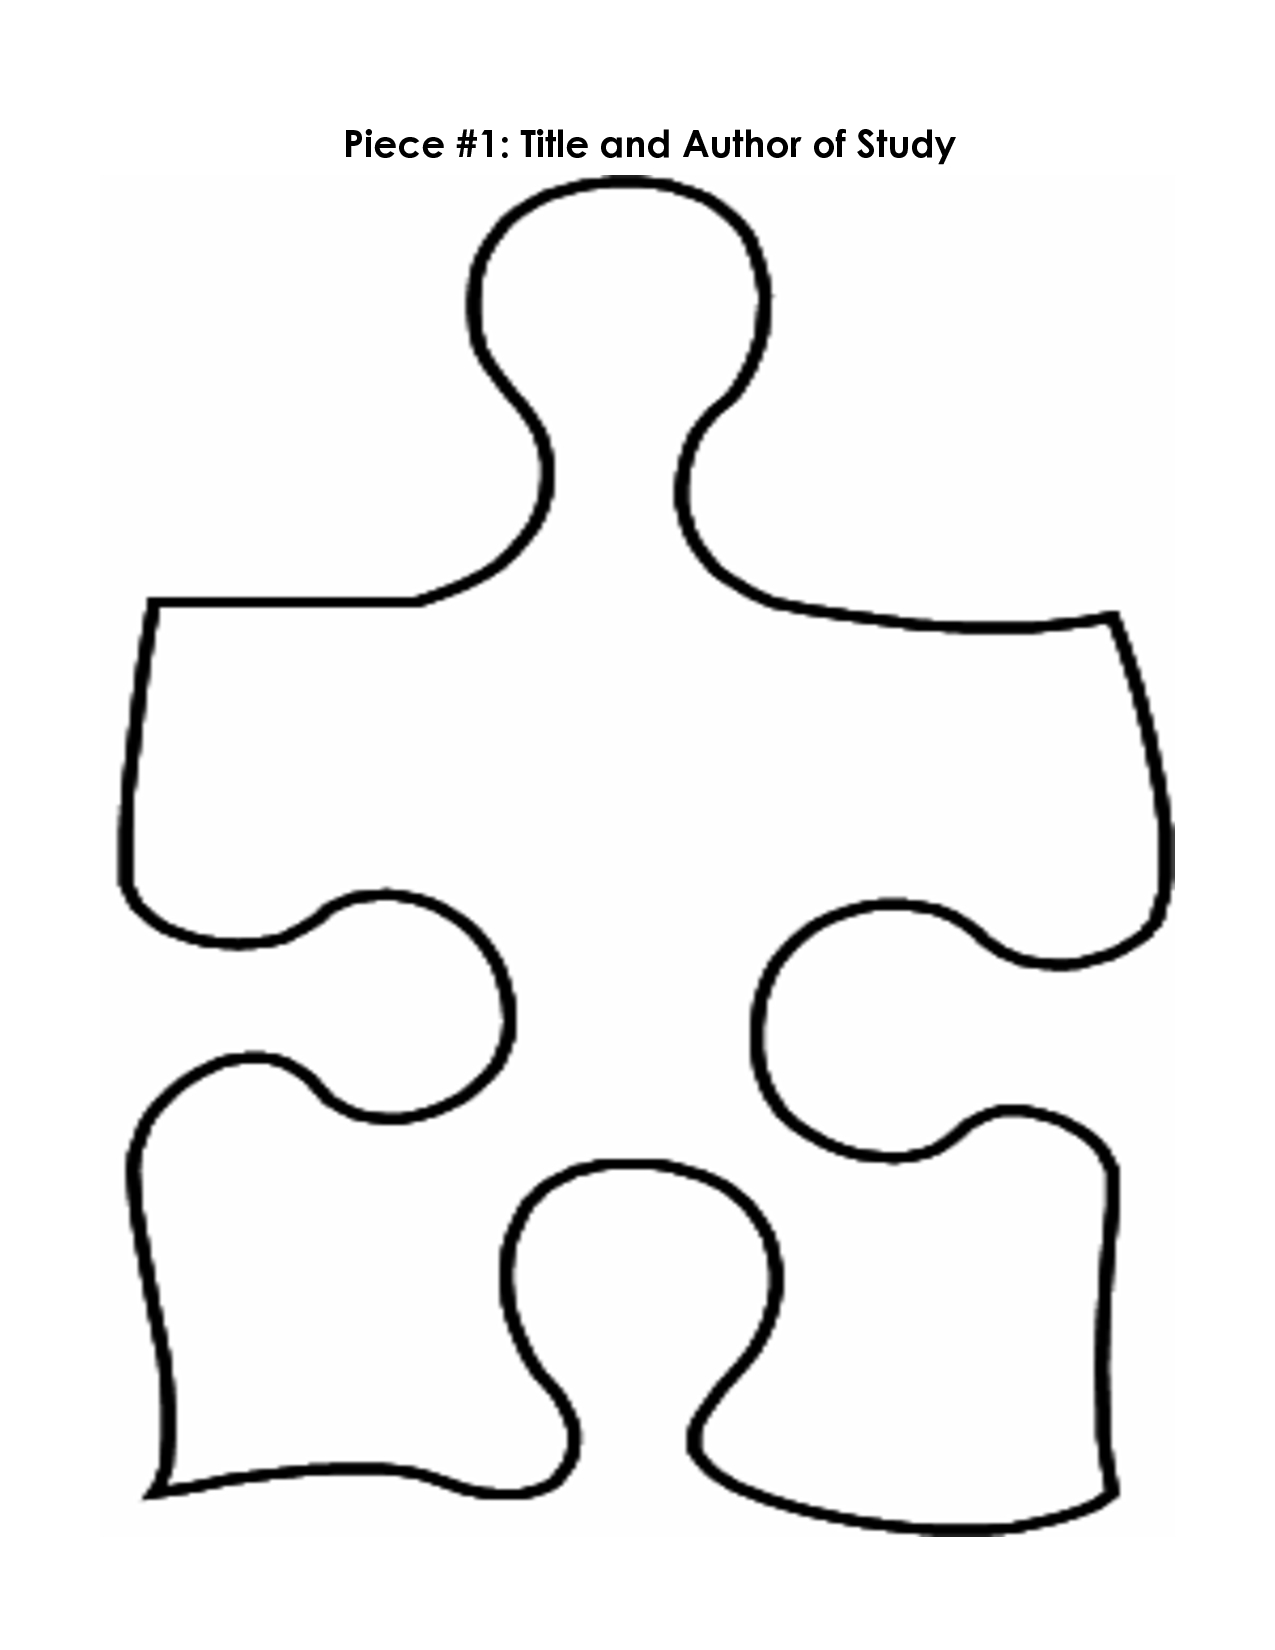 Puzzle Piece Mystery Book Template Pp | Printables | Puzzle Piece - Free Blank Printable Puzzle Pieces